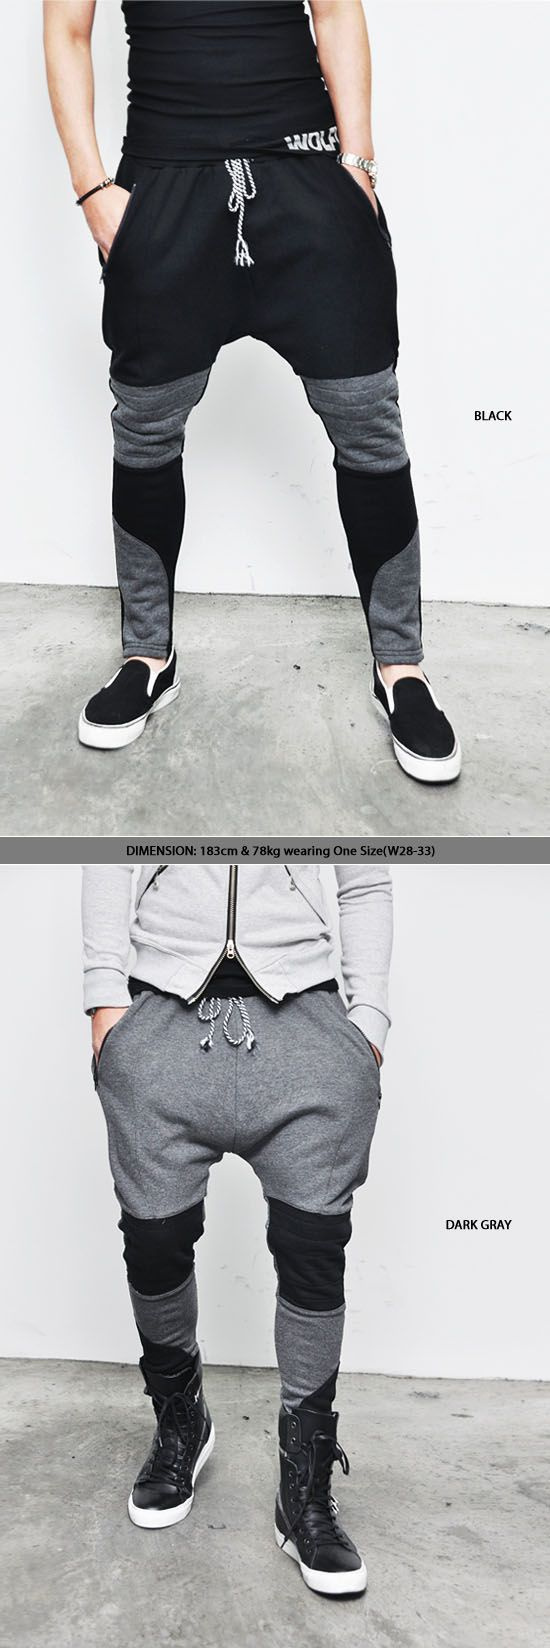 Bottoms :: Sweatpants :: Low Crotch Seaming Biker Baggy-Sweatpants 37 - Mens Fashion Clothing For An Attractive Guy Look